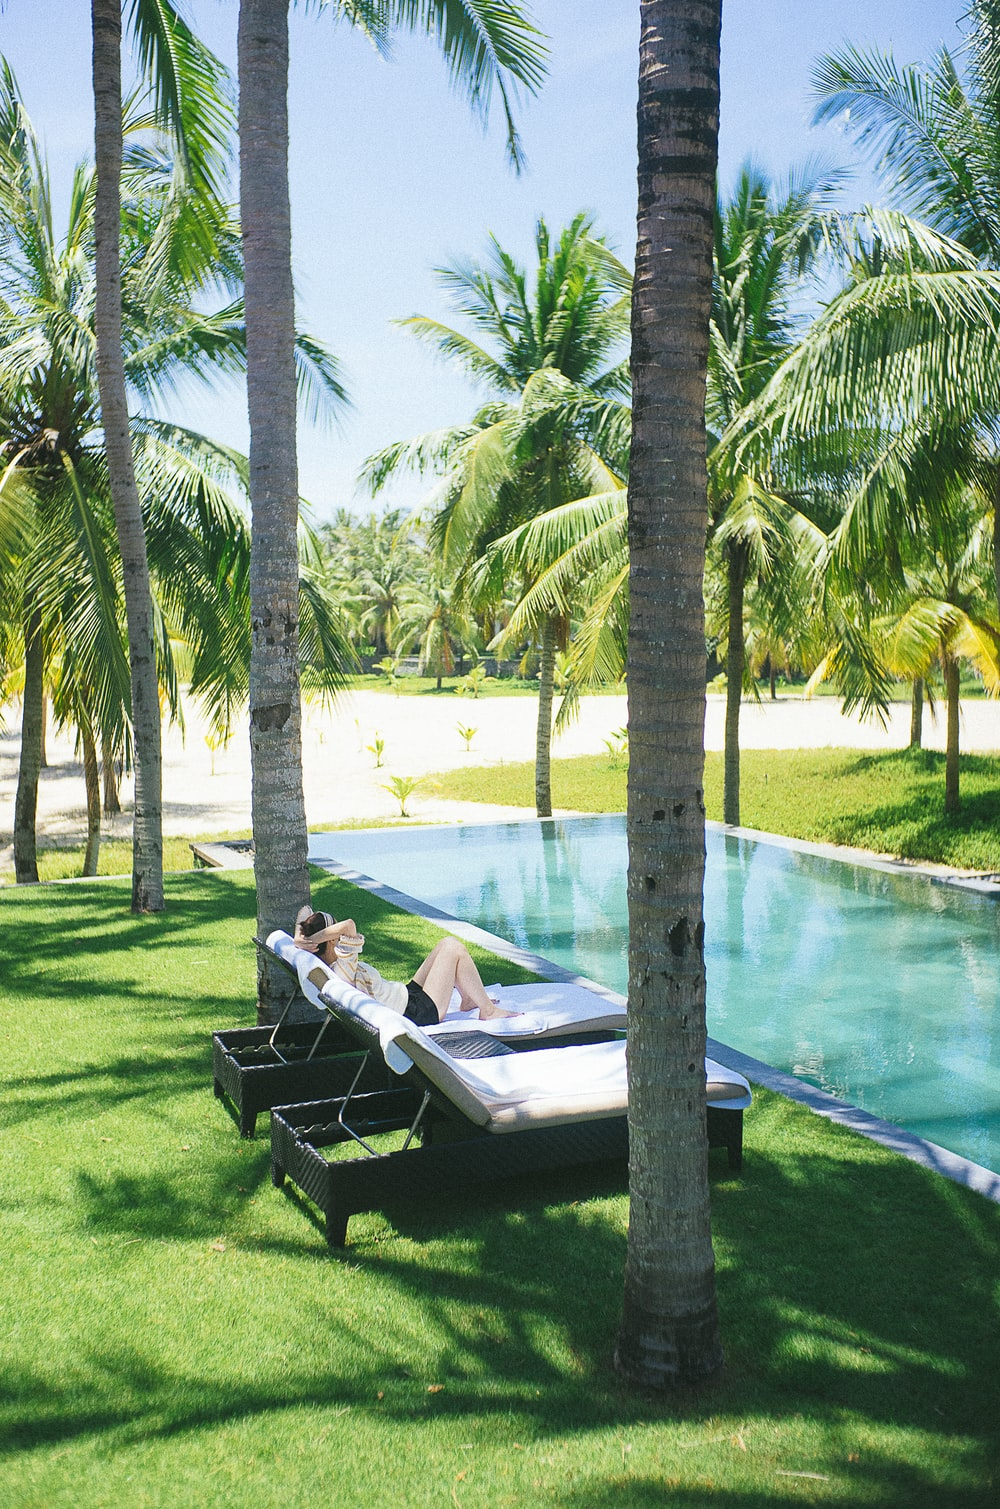 person lying on lounge chair near pool